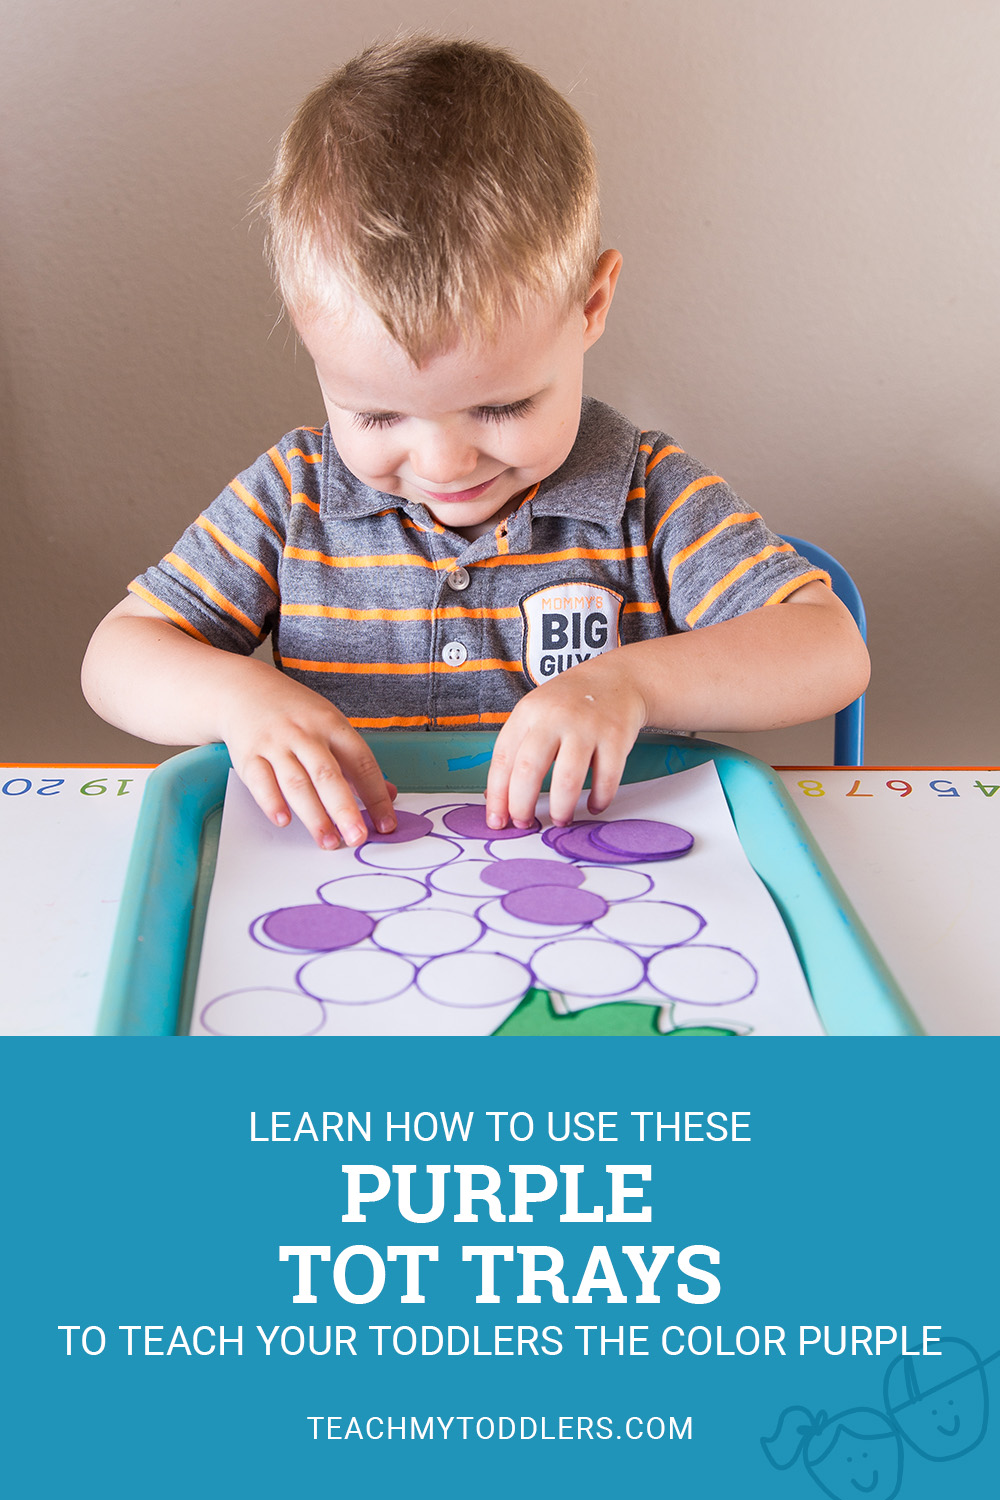 Learn how to use these purple tot trays to teachtoddlers the color purple